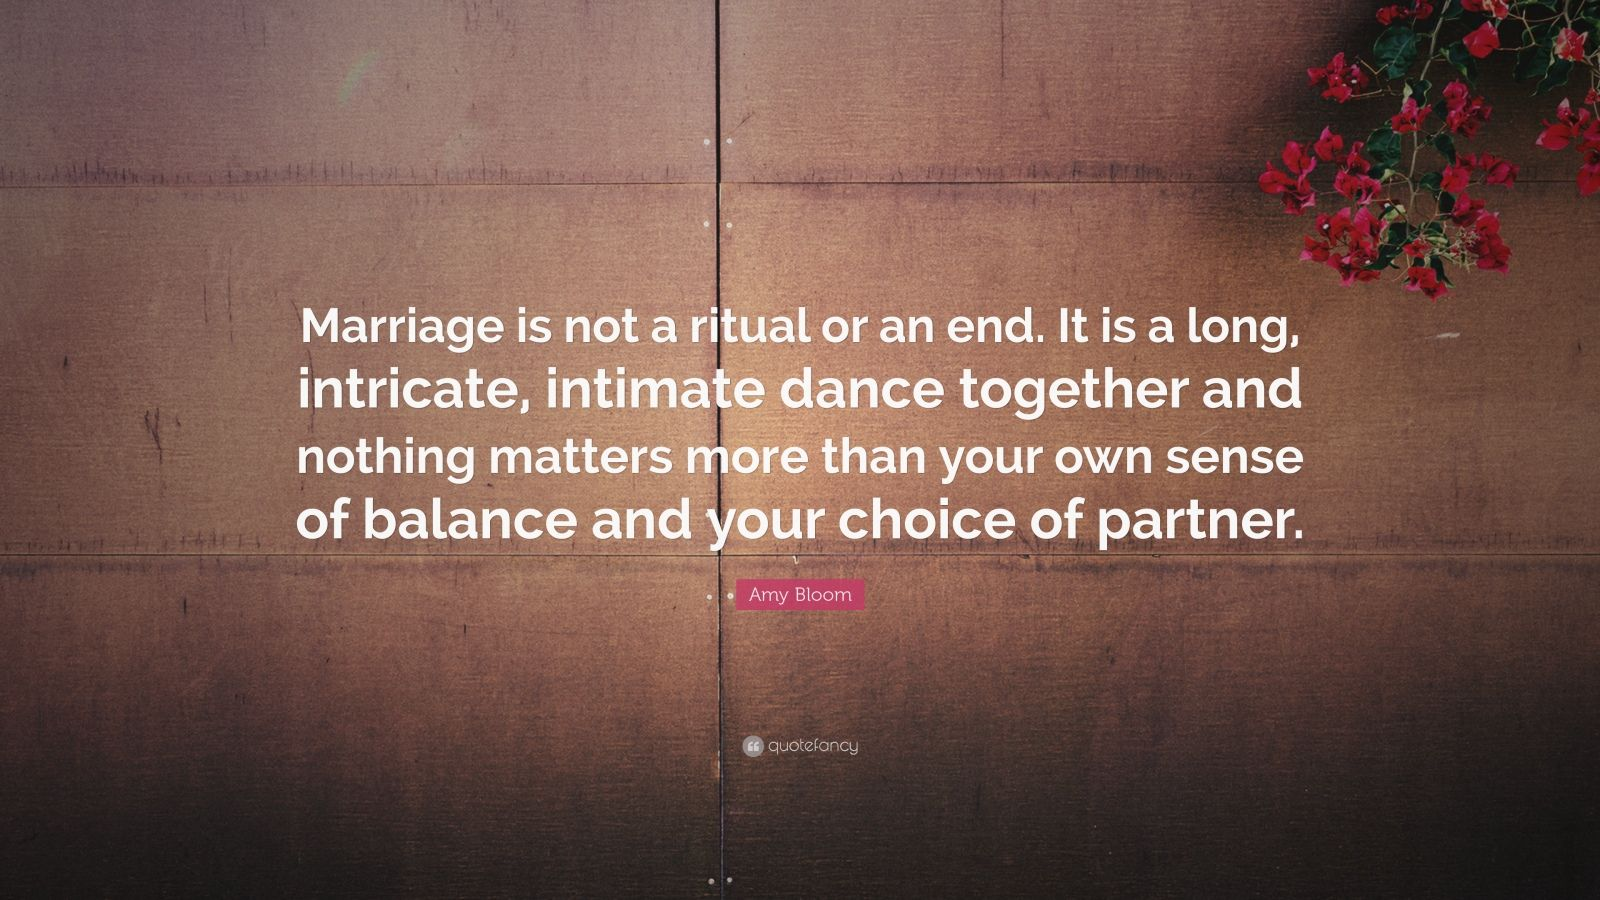 """Amy Bloom Quote: """"Marriage is not a ritual or an end. It is a long, intricate, intimate dance together and nothing matters more than your own sense of balance and your choice of partner."""""""